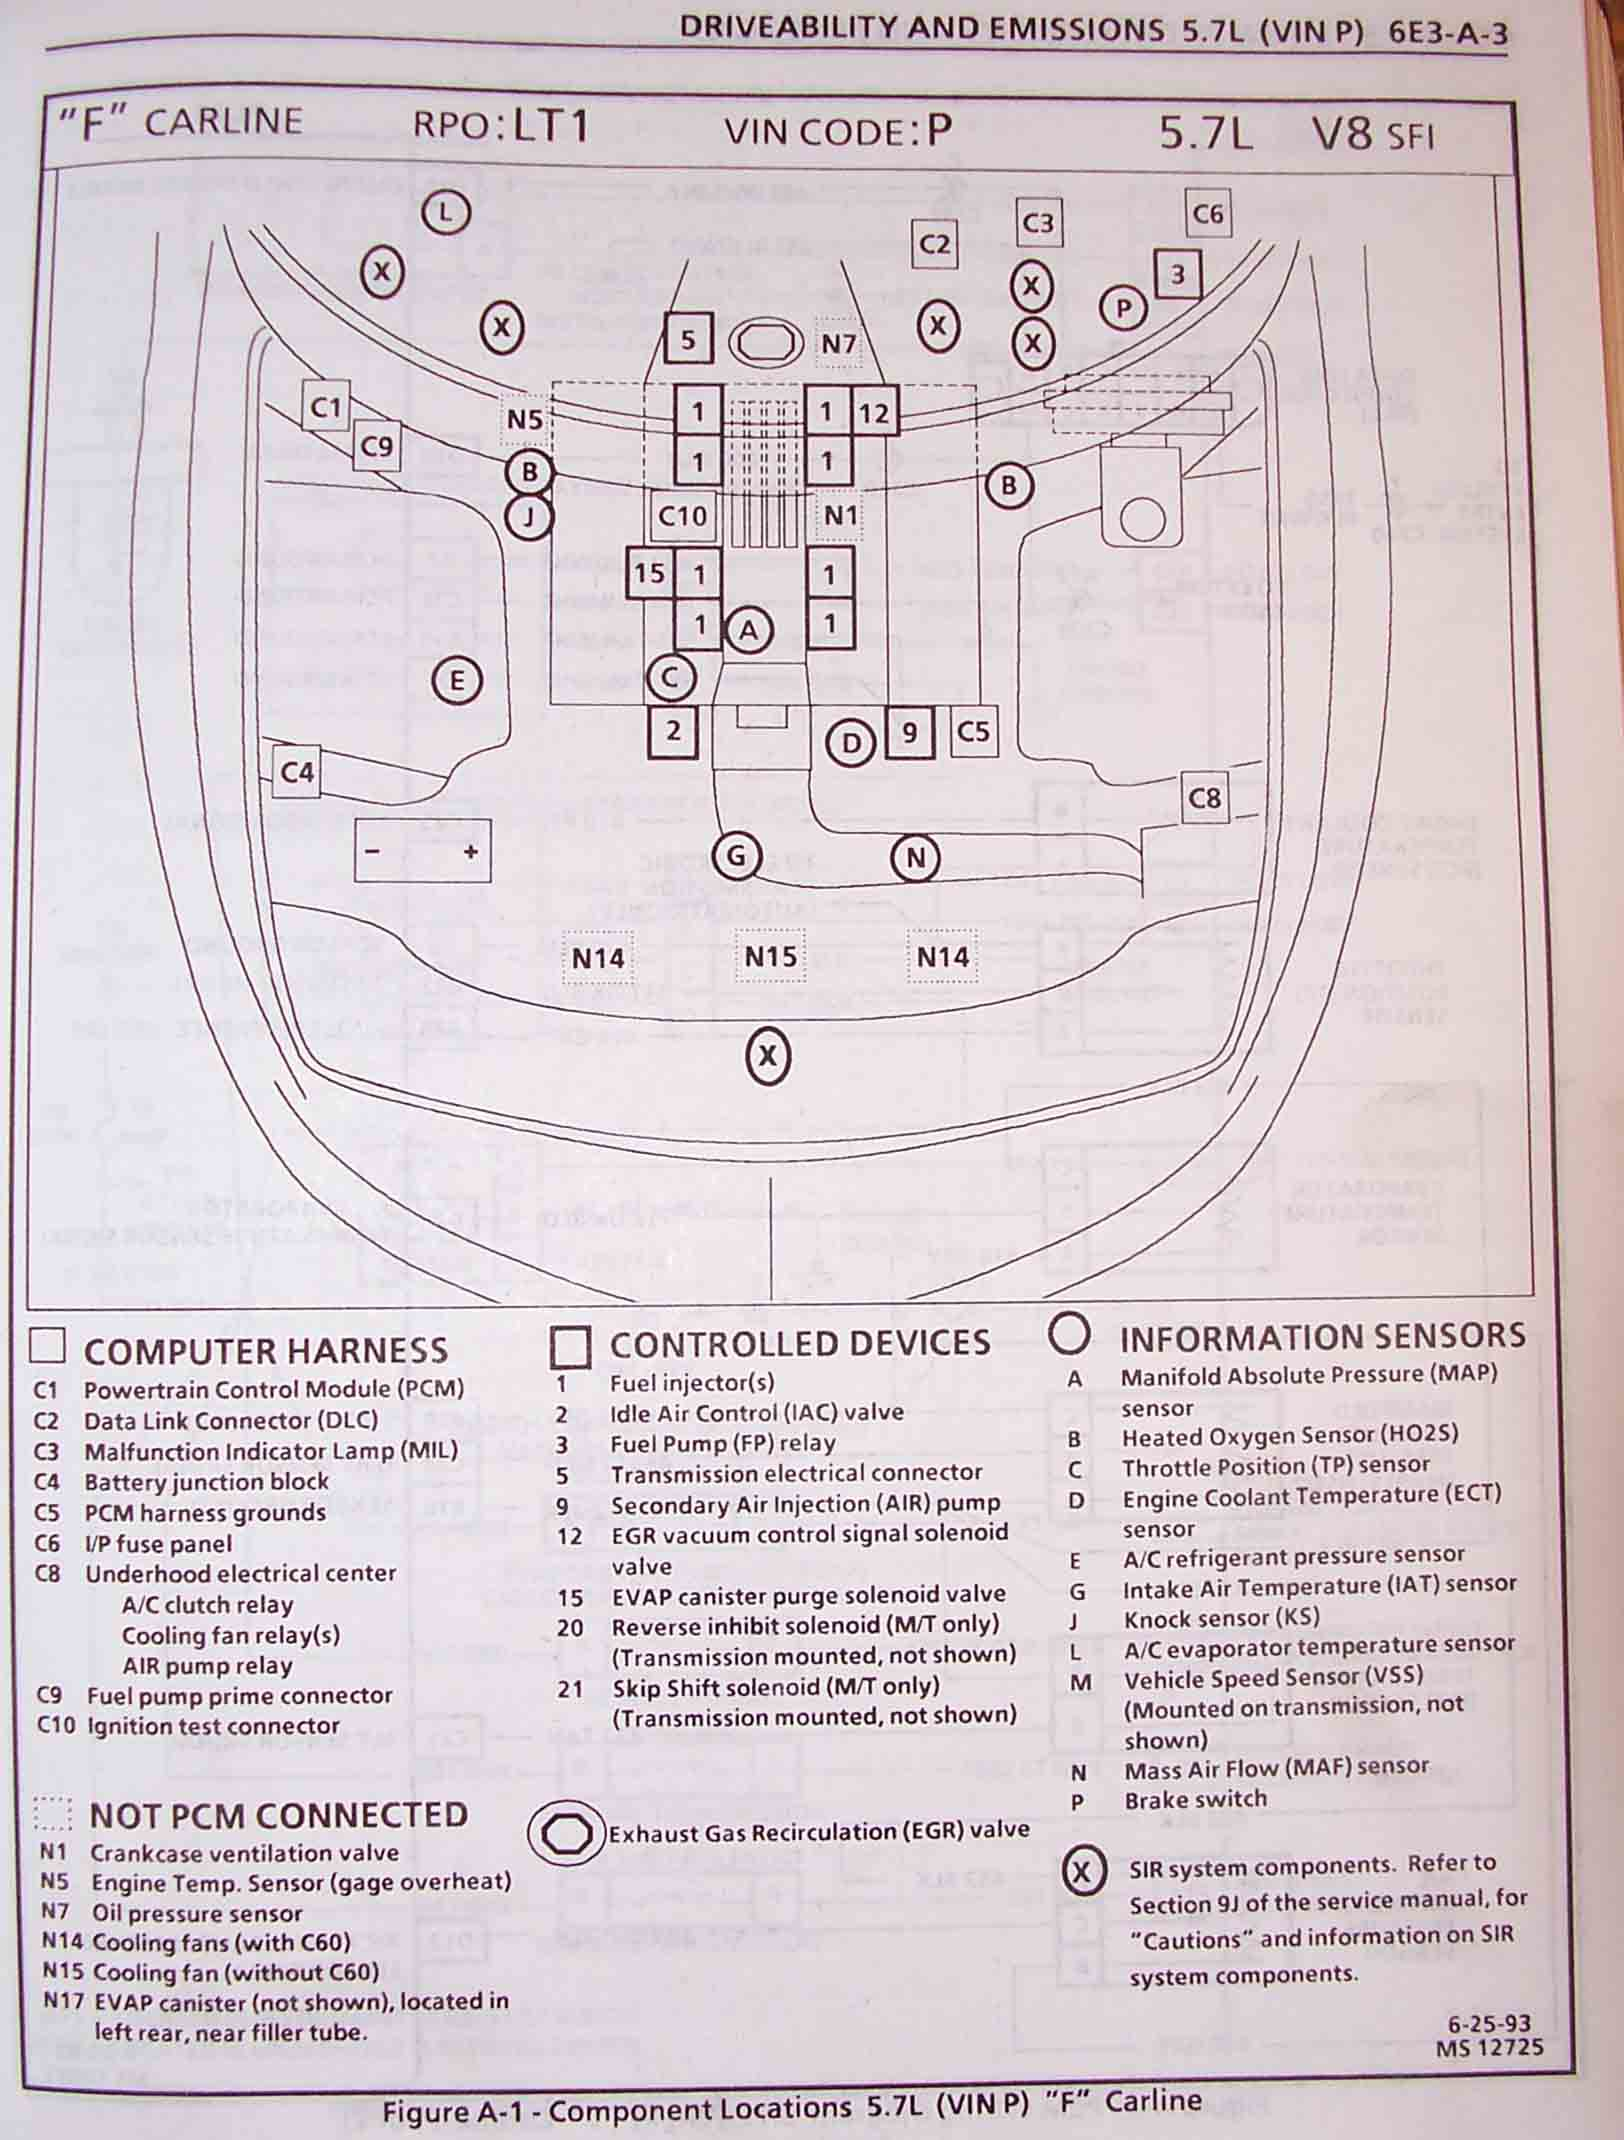 94 Camaro Wiring Diagram Schematic Starting Know About Images Gallery 1995 F Body Wire Harness Schematics Rh Lt1swap Com